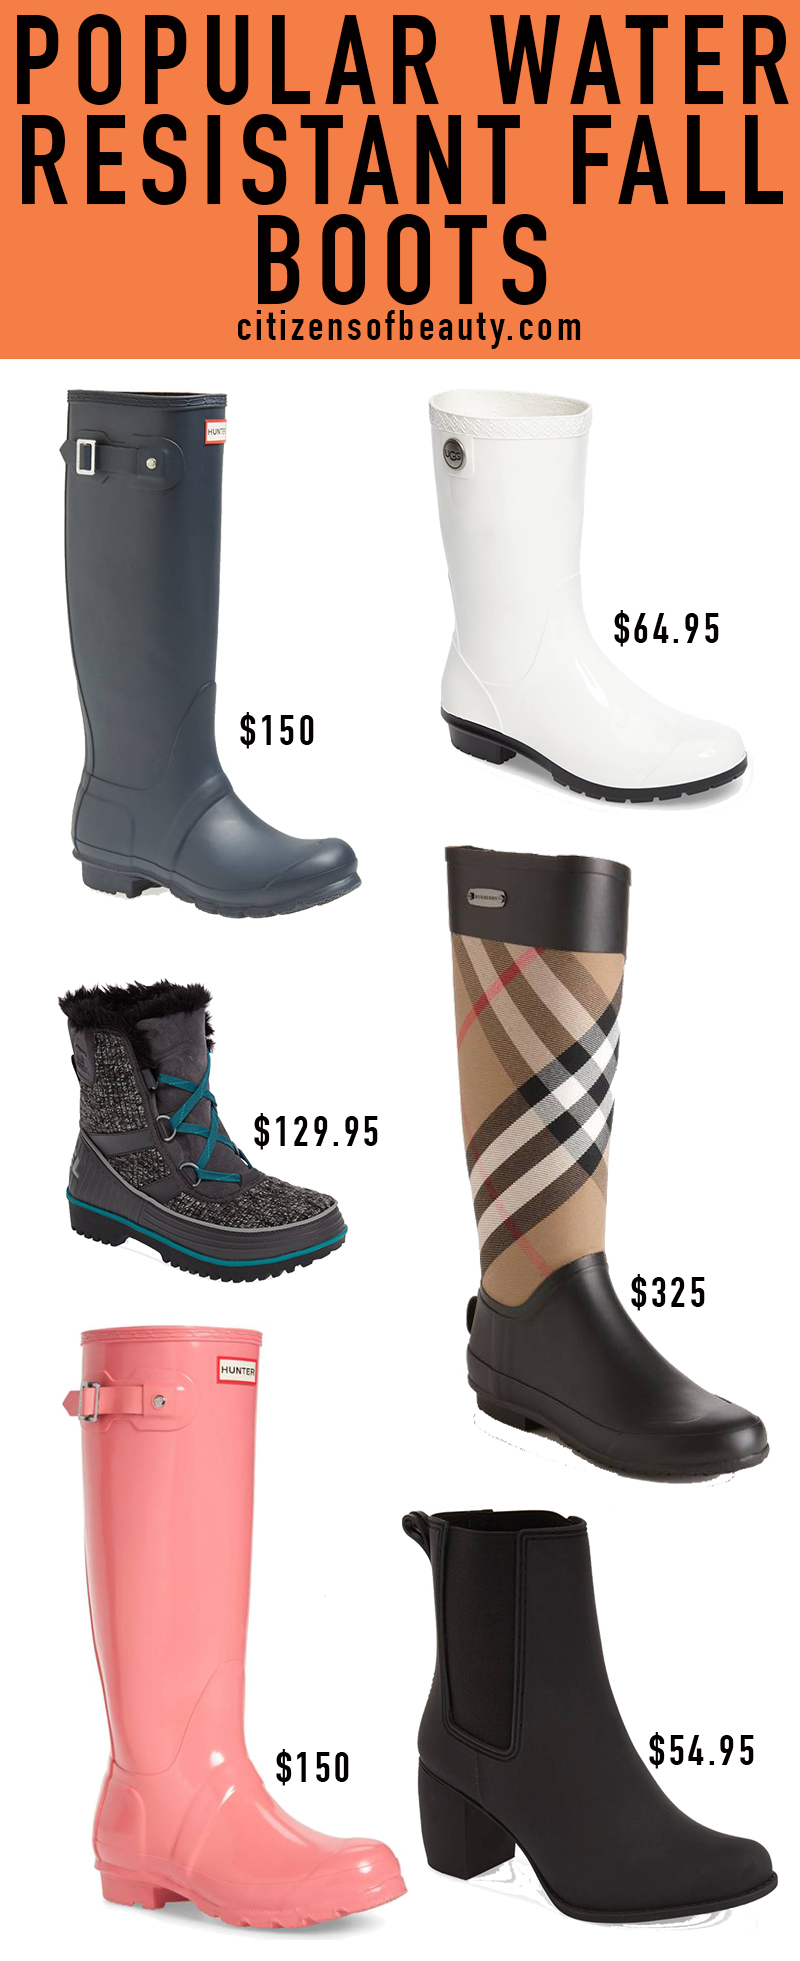 Popular water resistant fall boots